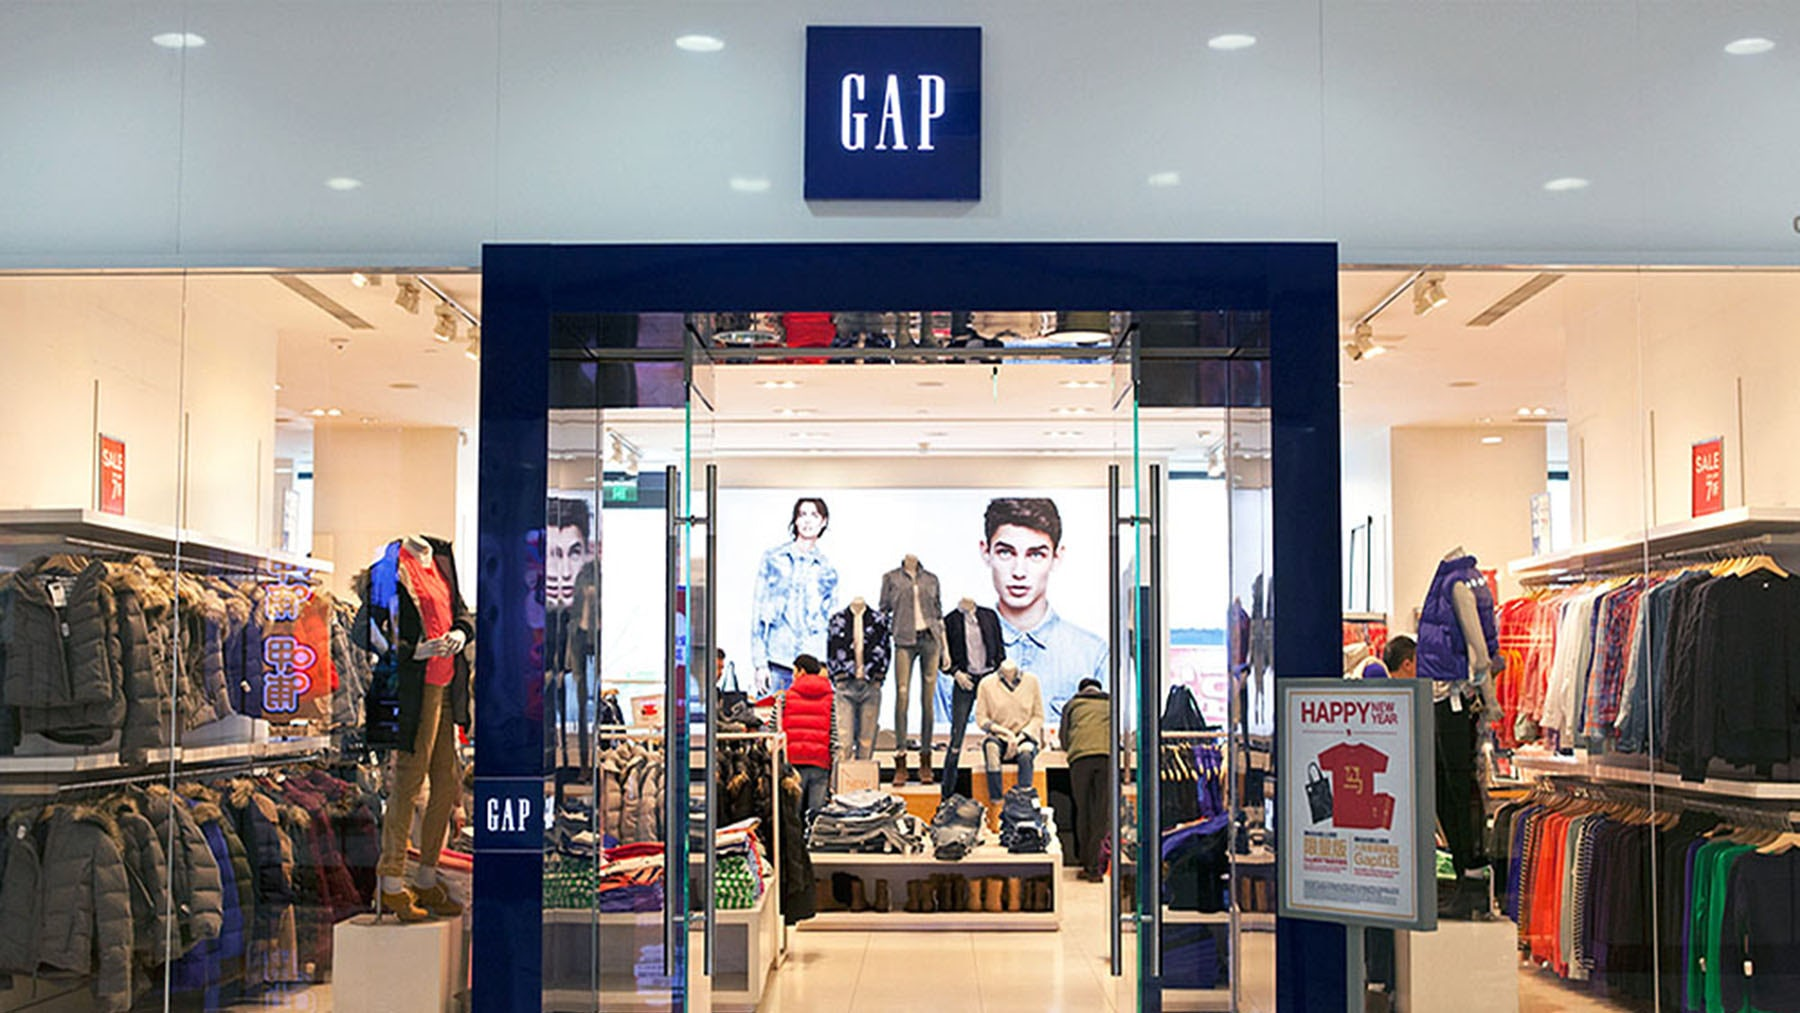 Article cover of Old Navy Can't Save Gap This Time as Weakness Sparks Stock Drop